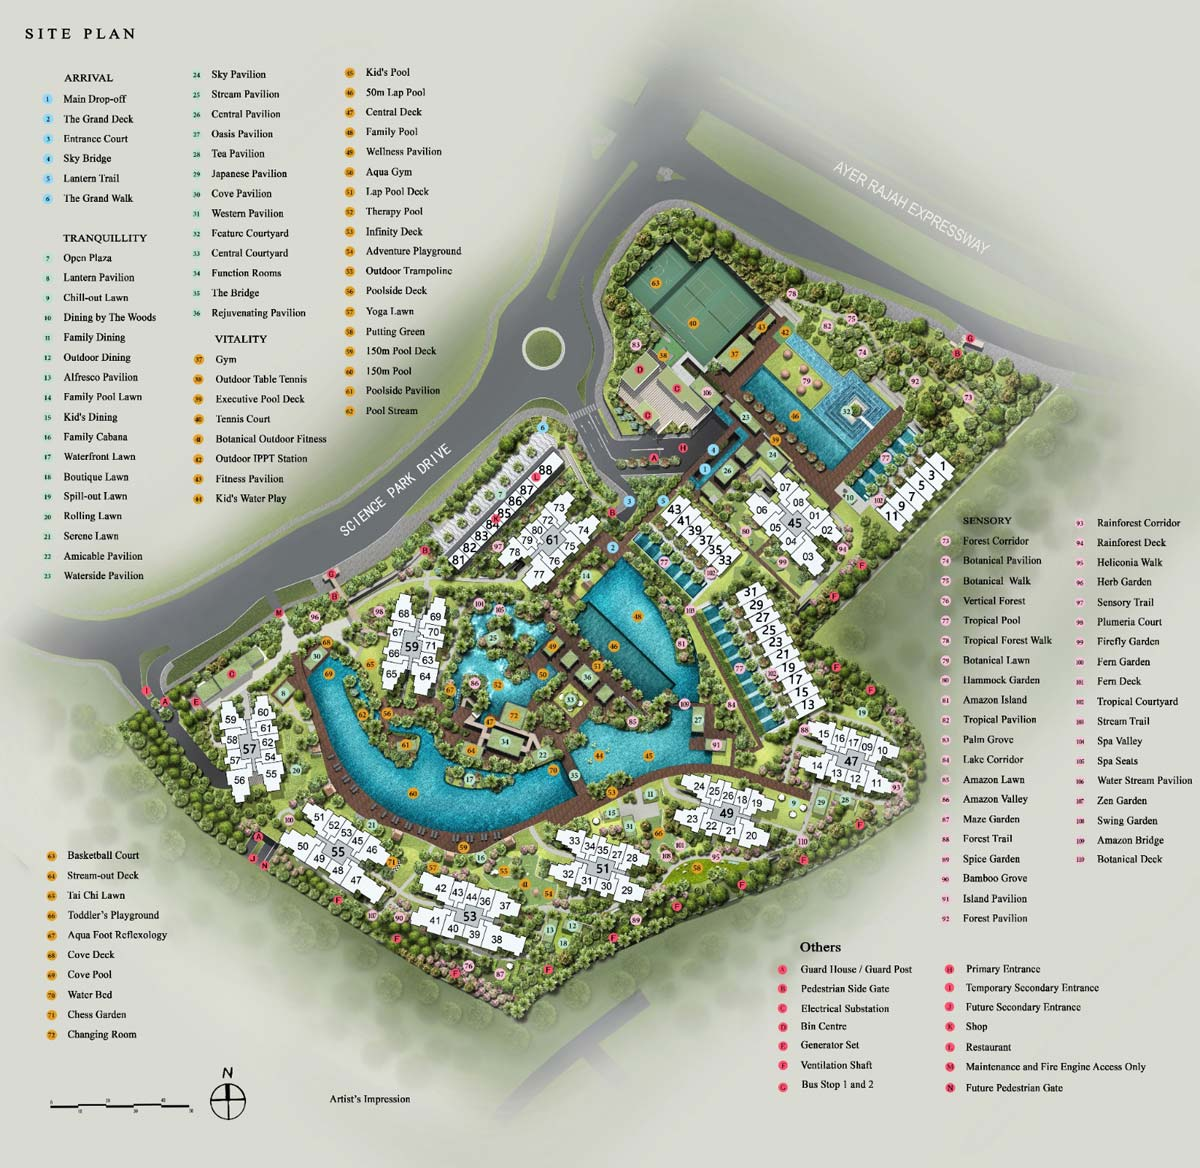 Site Plan of Normanton Park (Please Click to Enlarge)